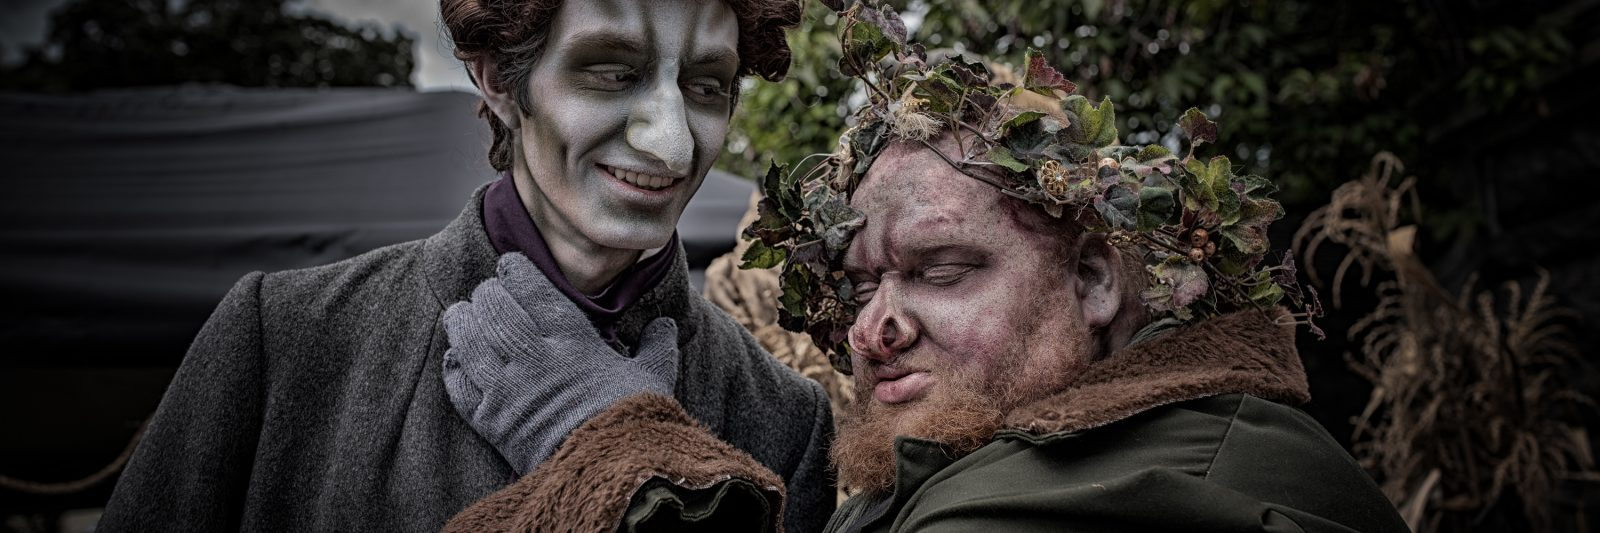 Characters from Horseman's Hollow haunted house pose at Tarrytown Farmers Market.